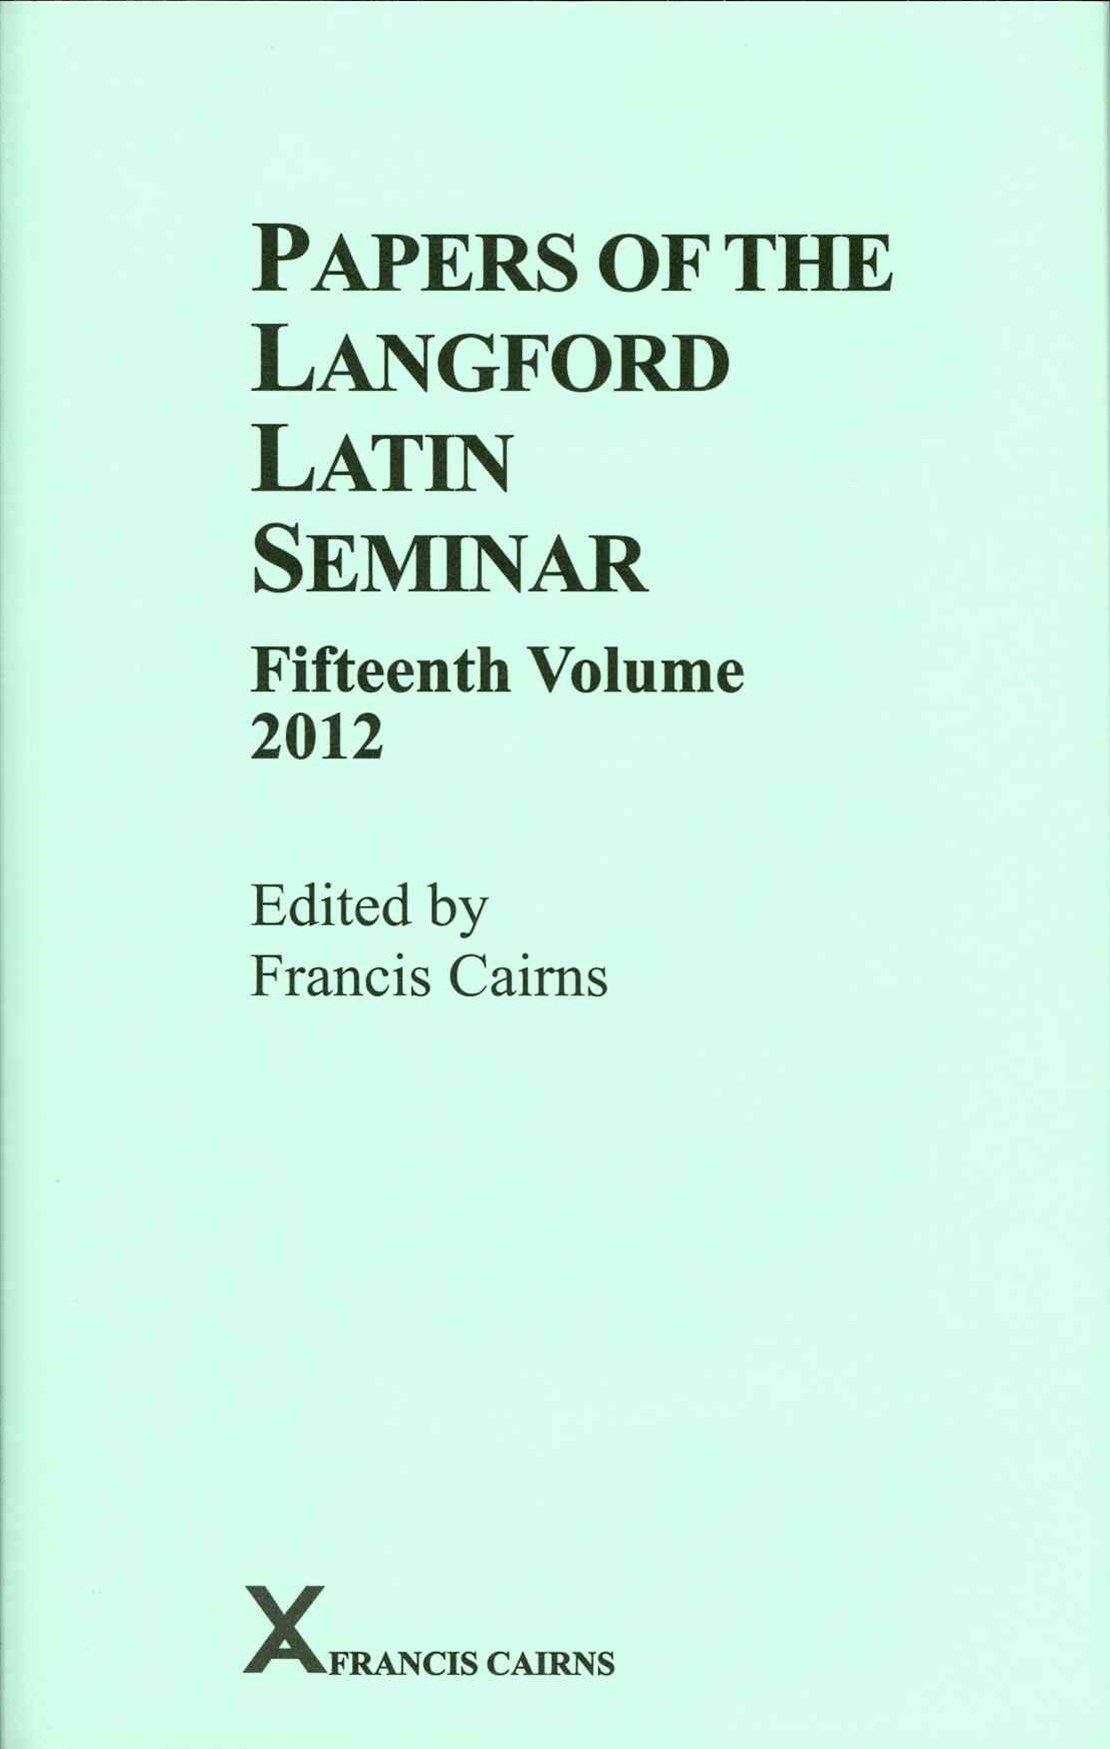 Papers of the Langford Latin Seminar, Fifteenth Volume 2012